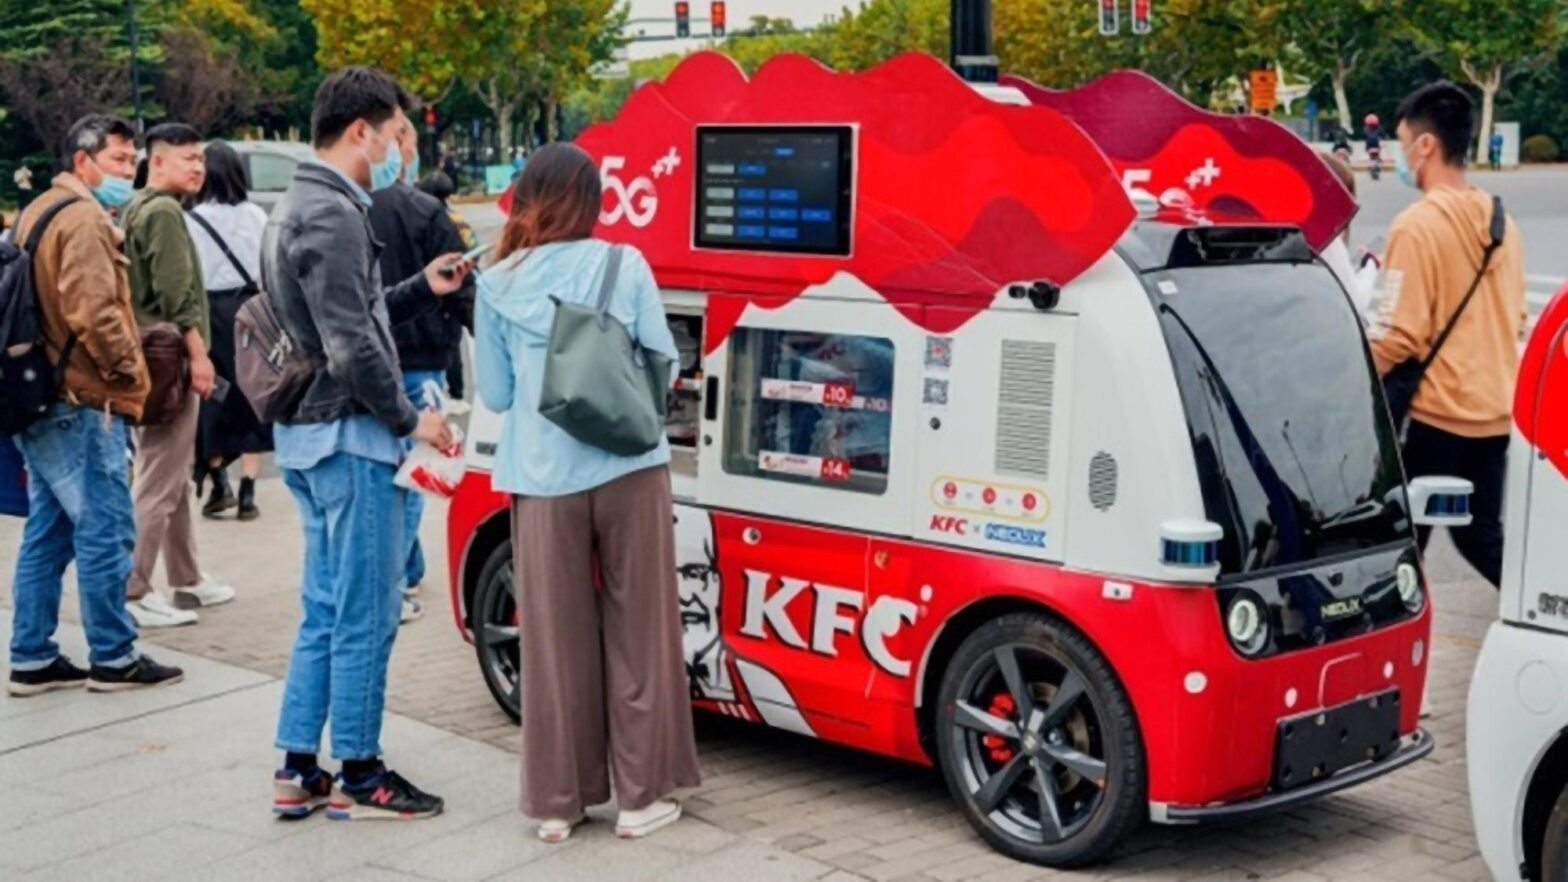 Pizza Hut and KFC Self-driving Cars